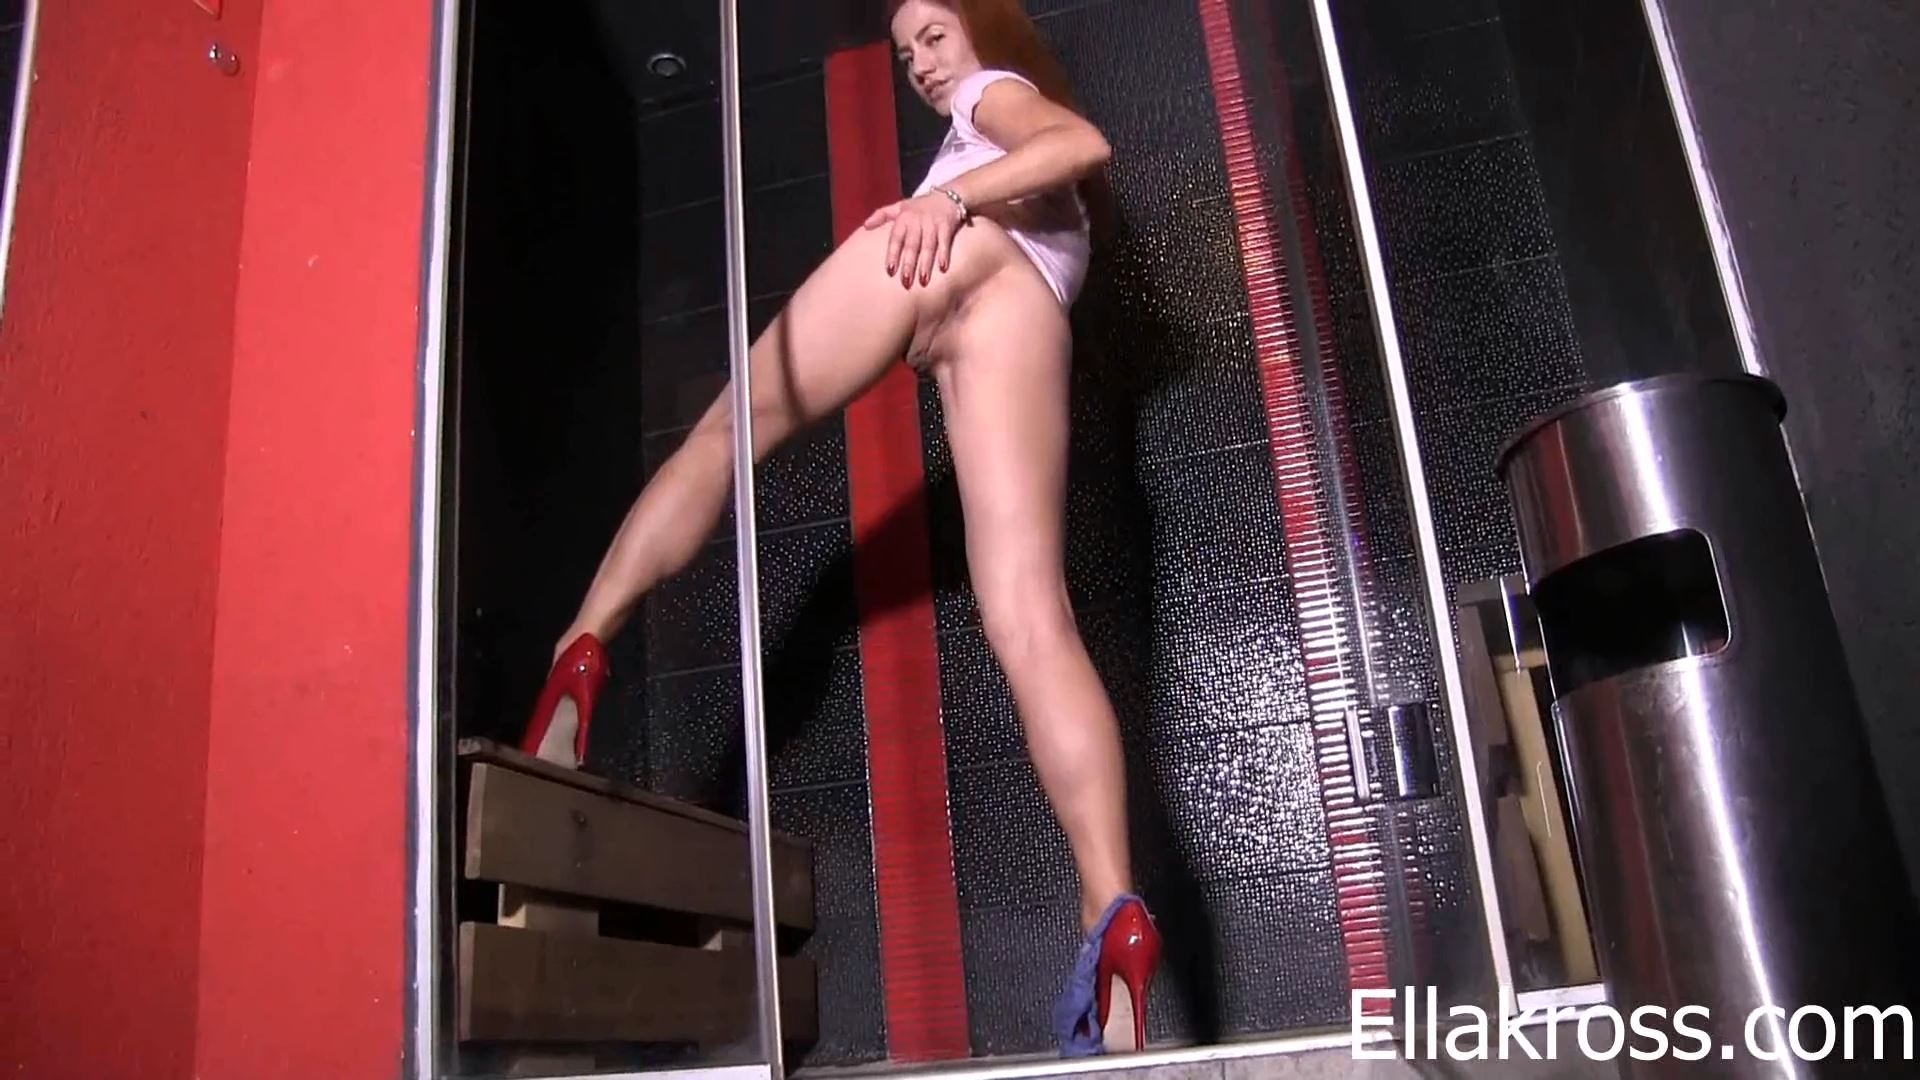 Mistress Ella Kross In Scene: Lick My Tight Asshole While You Jerk Off - ELLAKROSS - FULL HD/1080p/MP4